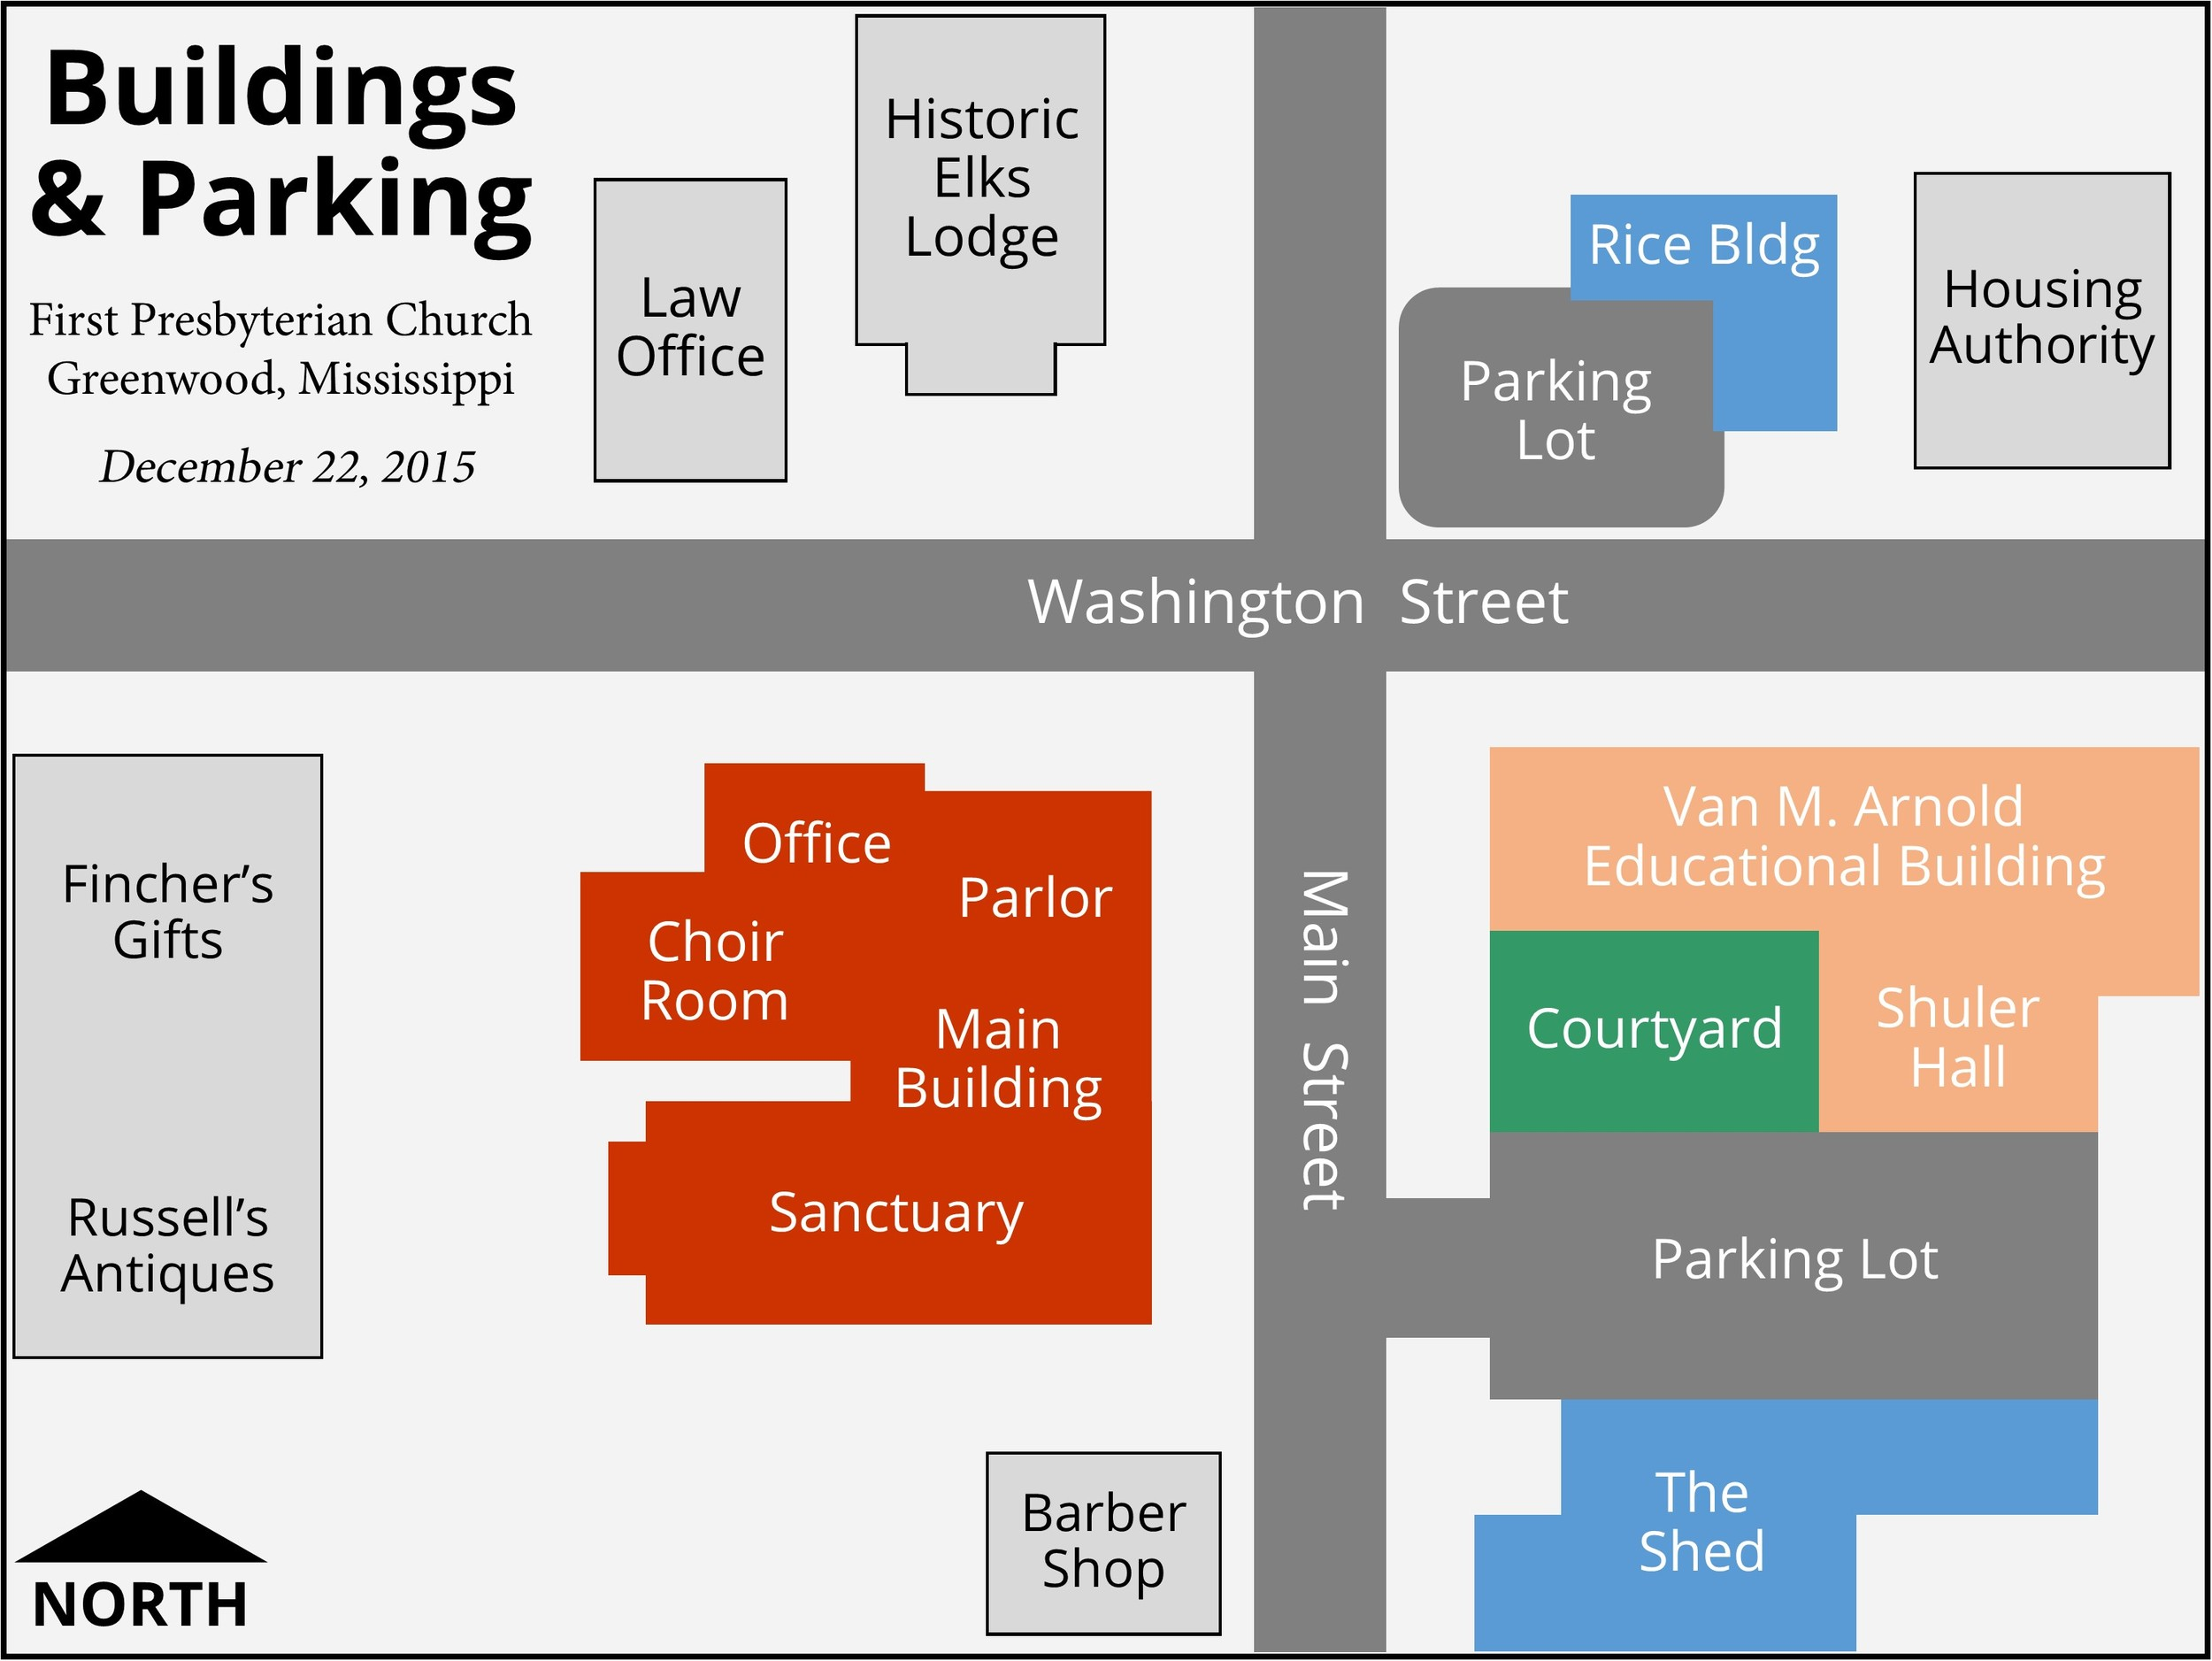 Buildings and Parking Locations